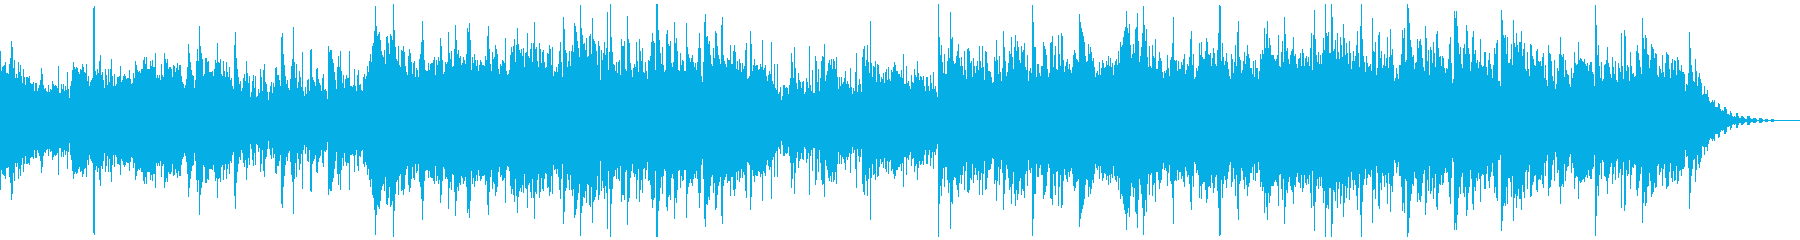 Quiet, serious, commentary, ambi, short's reproduced waveform